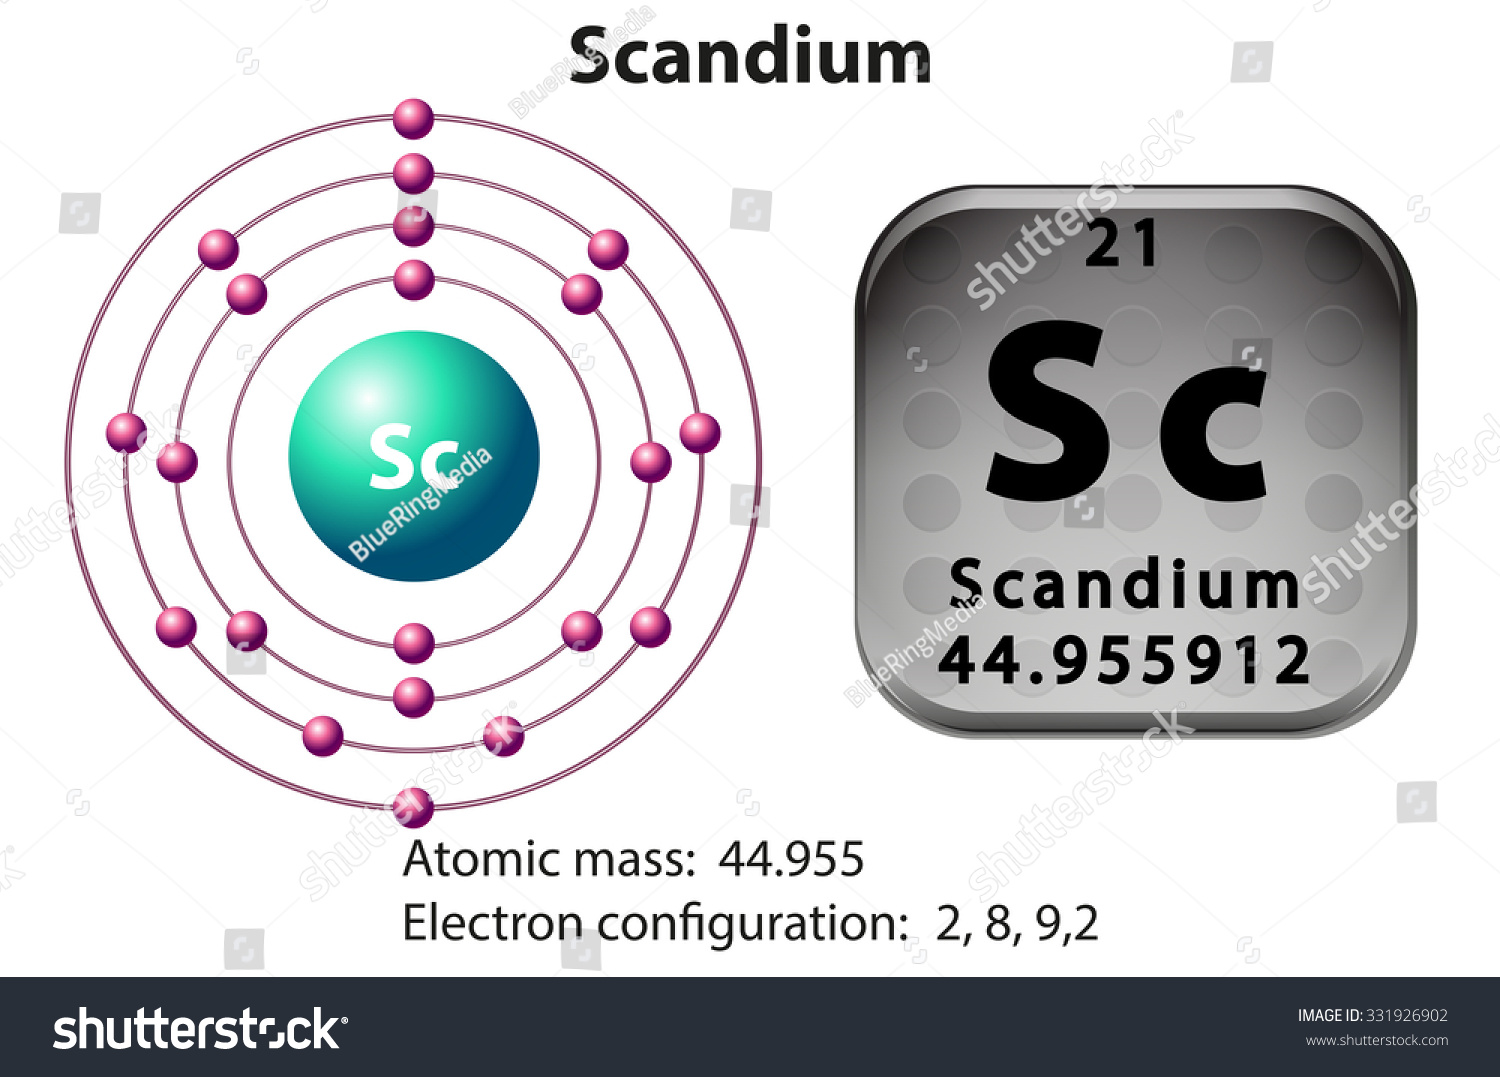 stock vector symbol and electron diagram for scandium illustration 331926902 symbol electron diagram scandium illustration stock vector (royalty